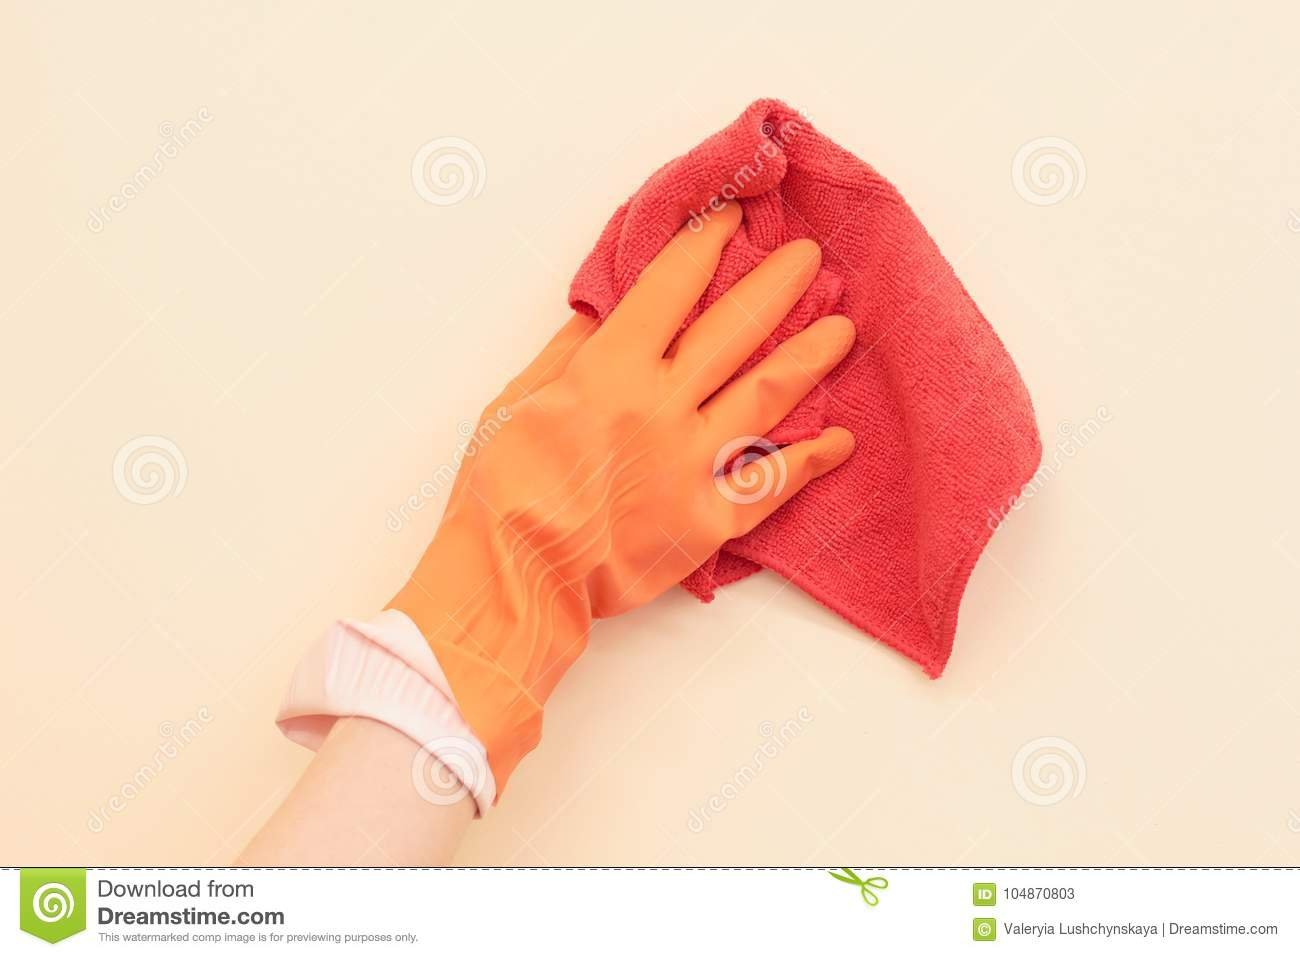 A hand in a glove washes the wall.